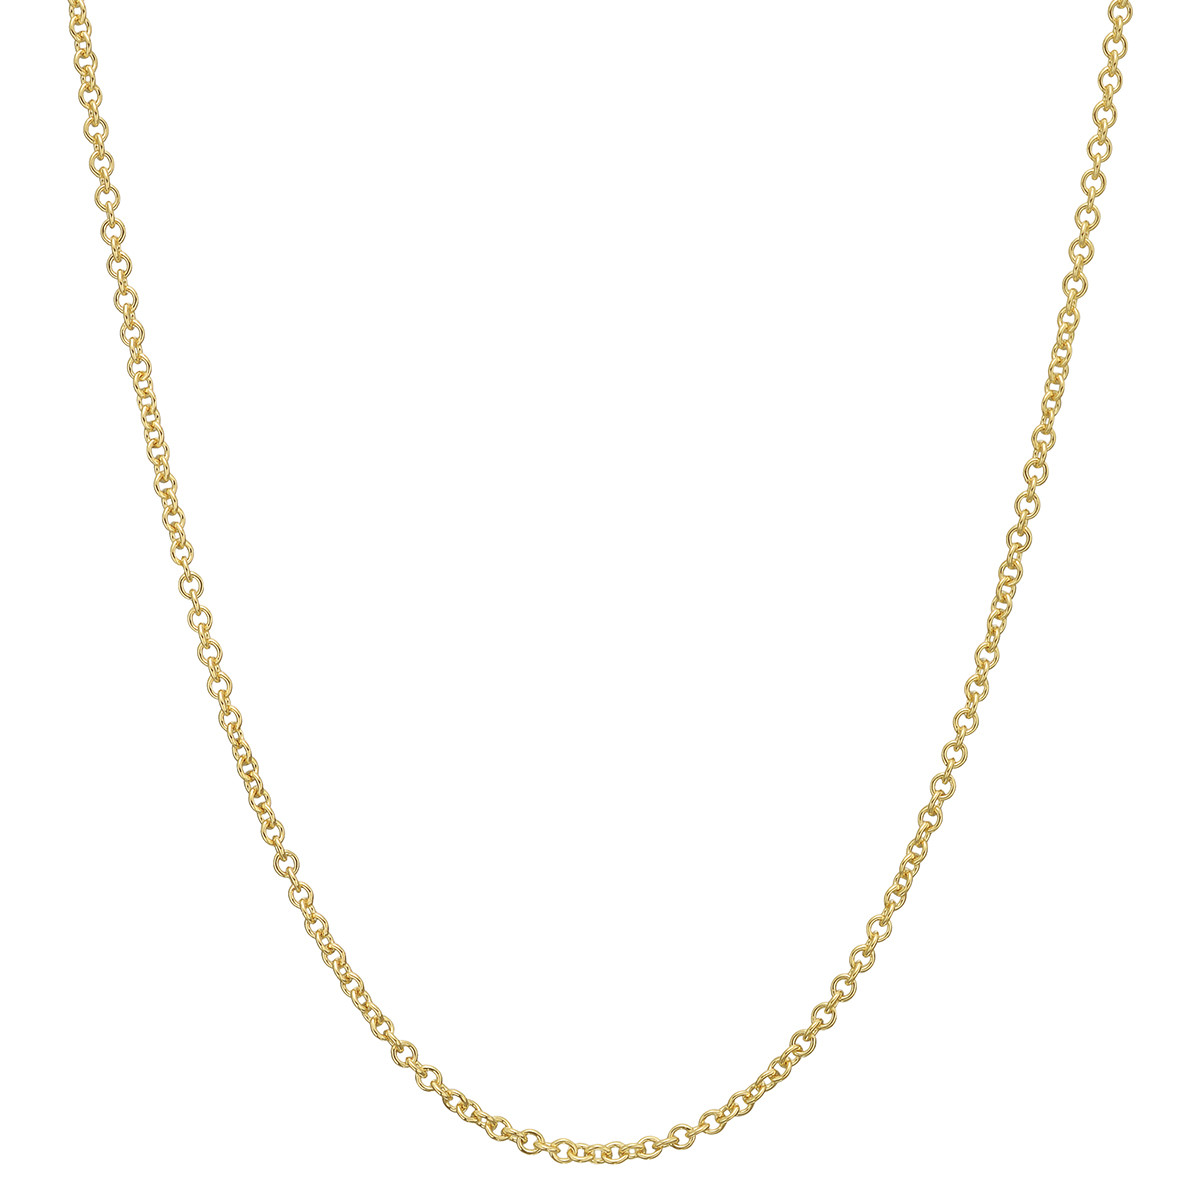 "14k Yellow Gold Chain Necklace (16"")"